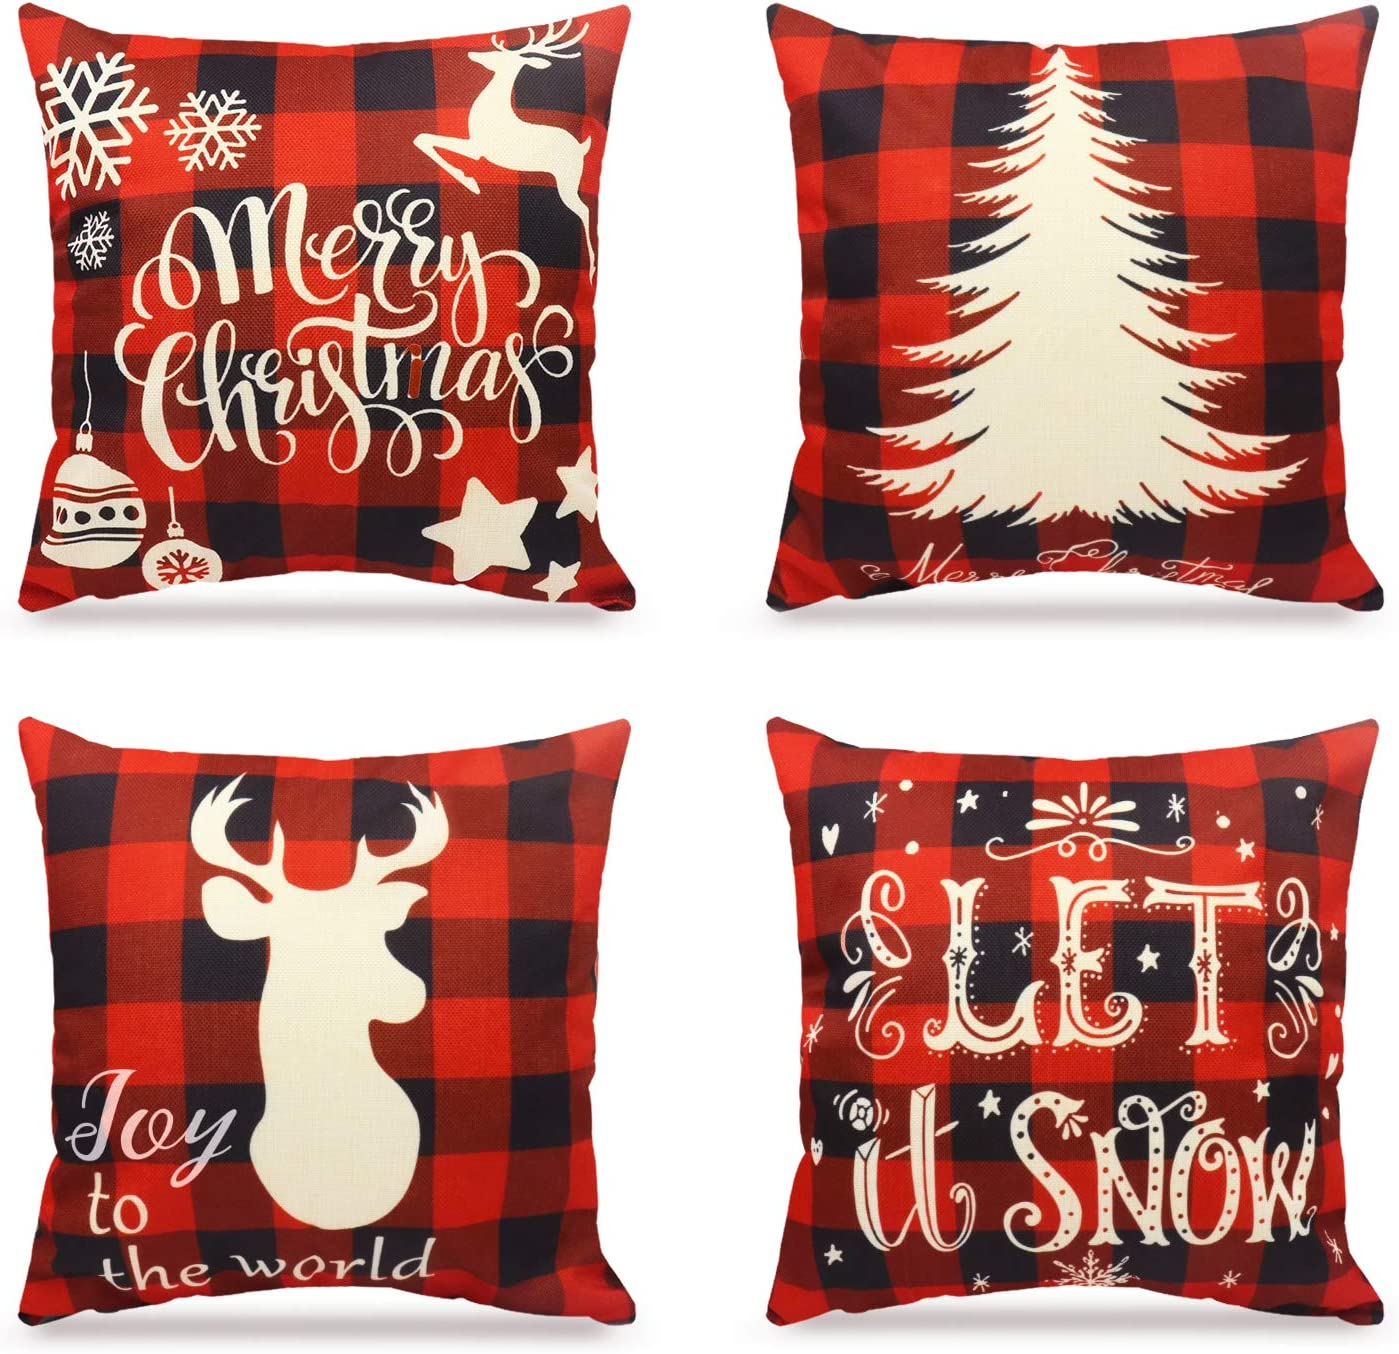 WEYON Christmas Pillow Covers Plaid Decorative Home Decor Red and Black Buffalo Check Pillowcases Cotton Linen 18 × 18 Inch, Set of 4